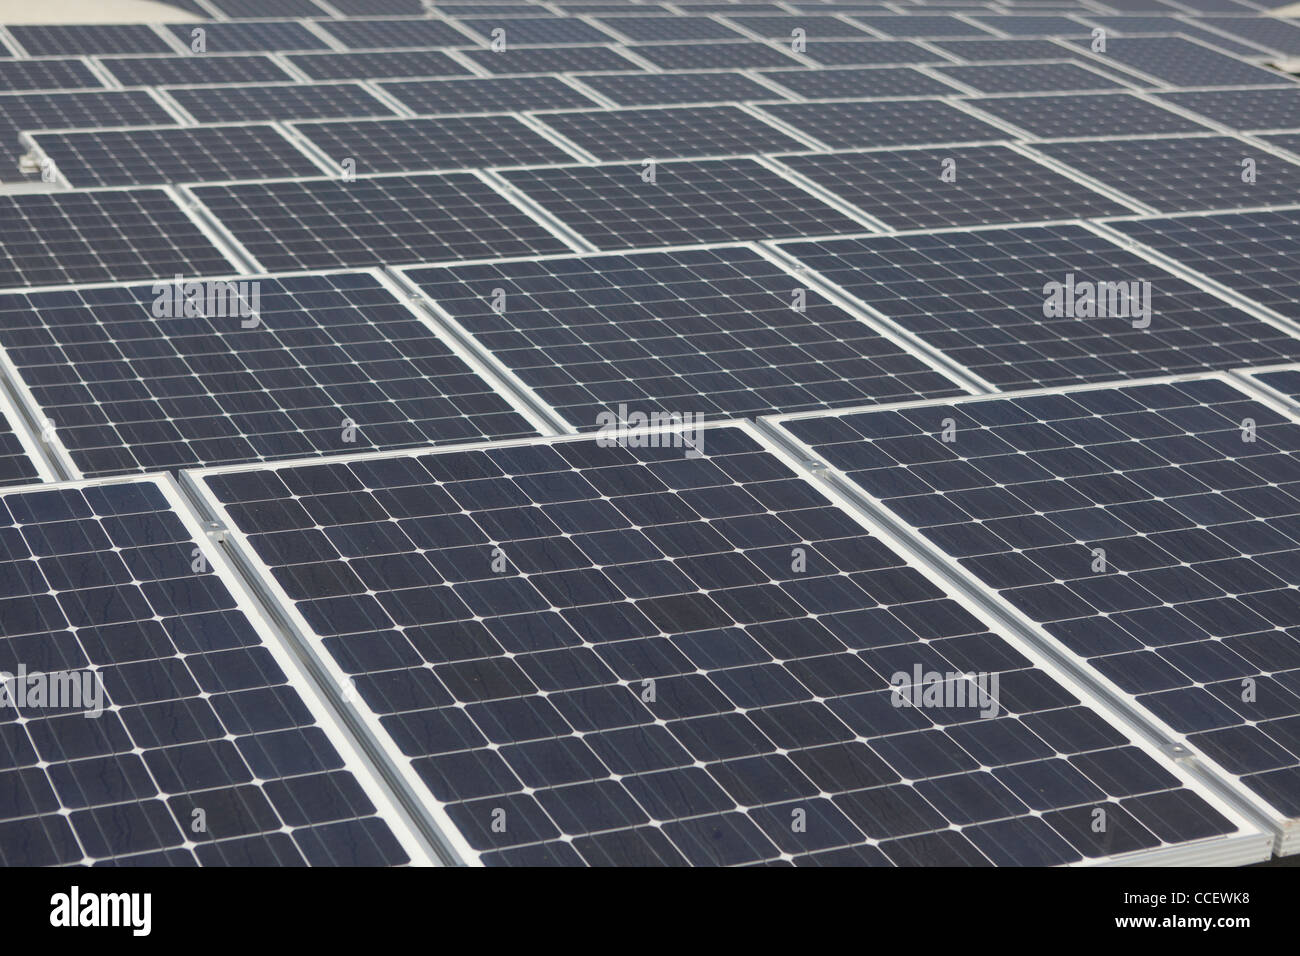 Large array of solar panels - Stock Image